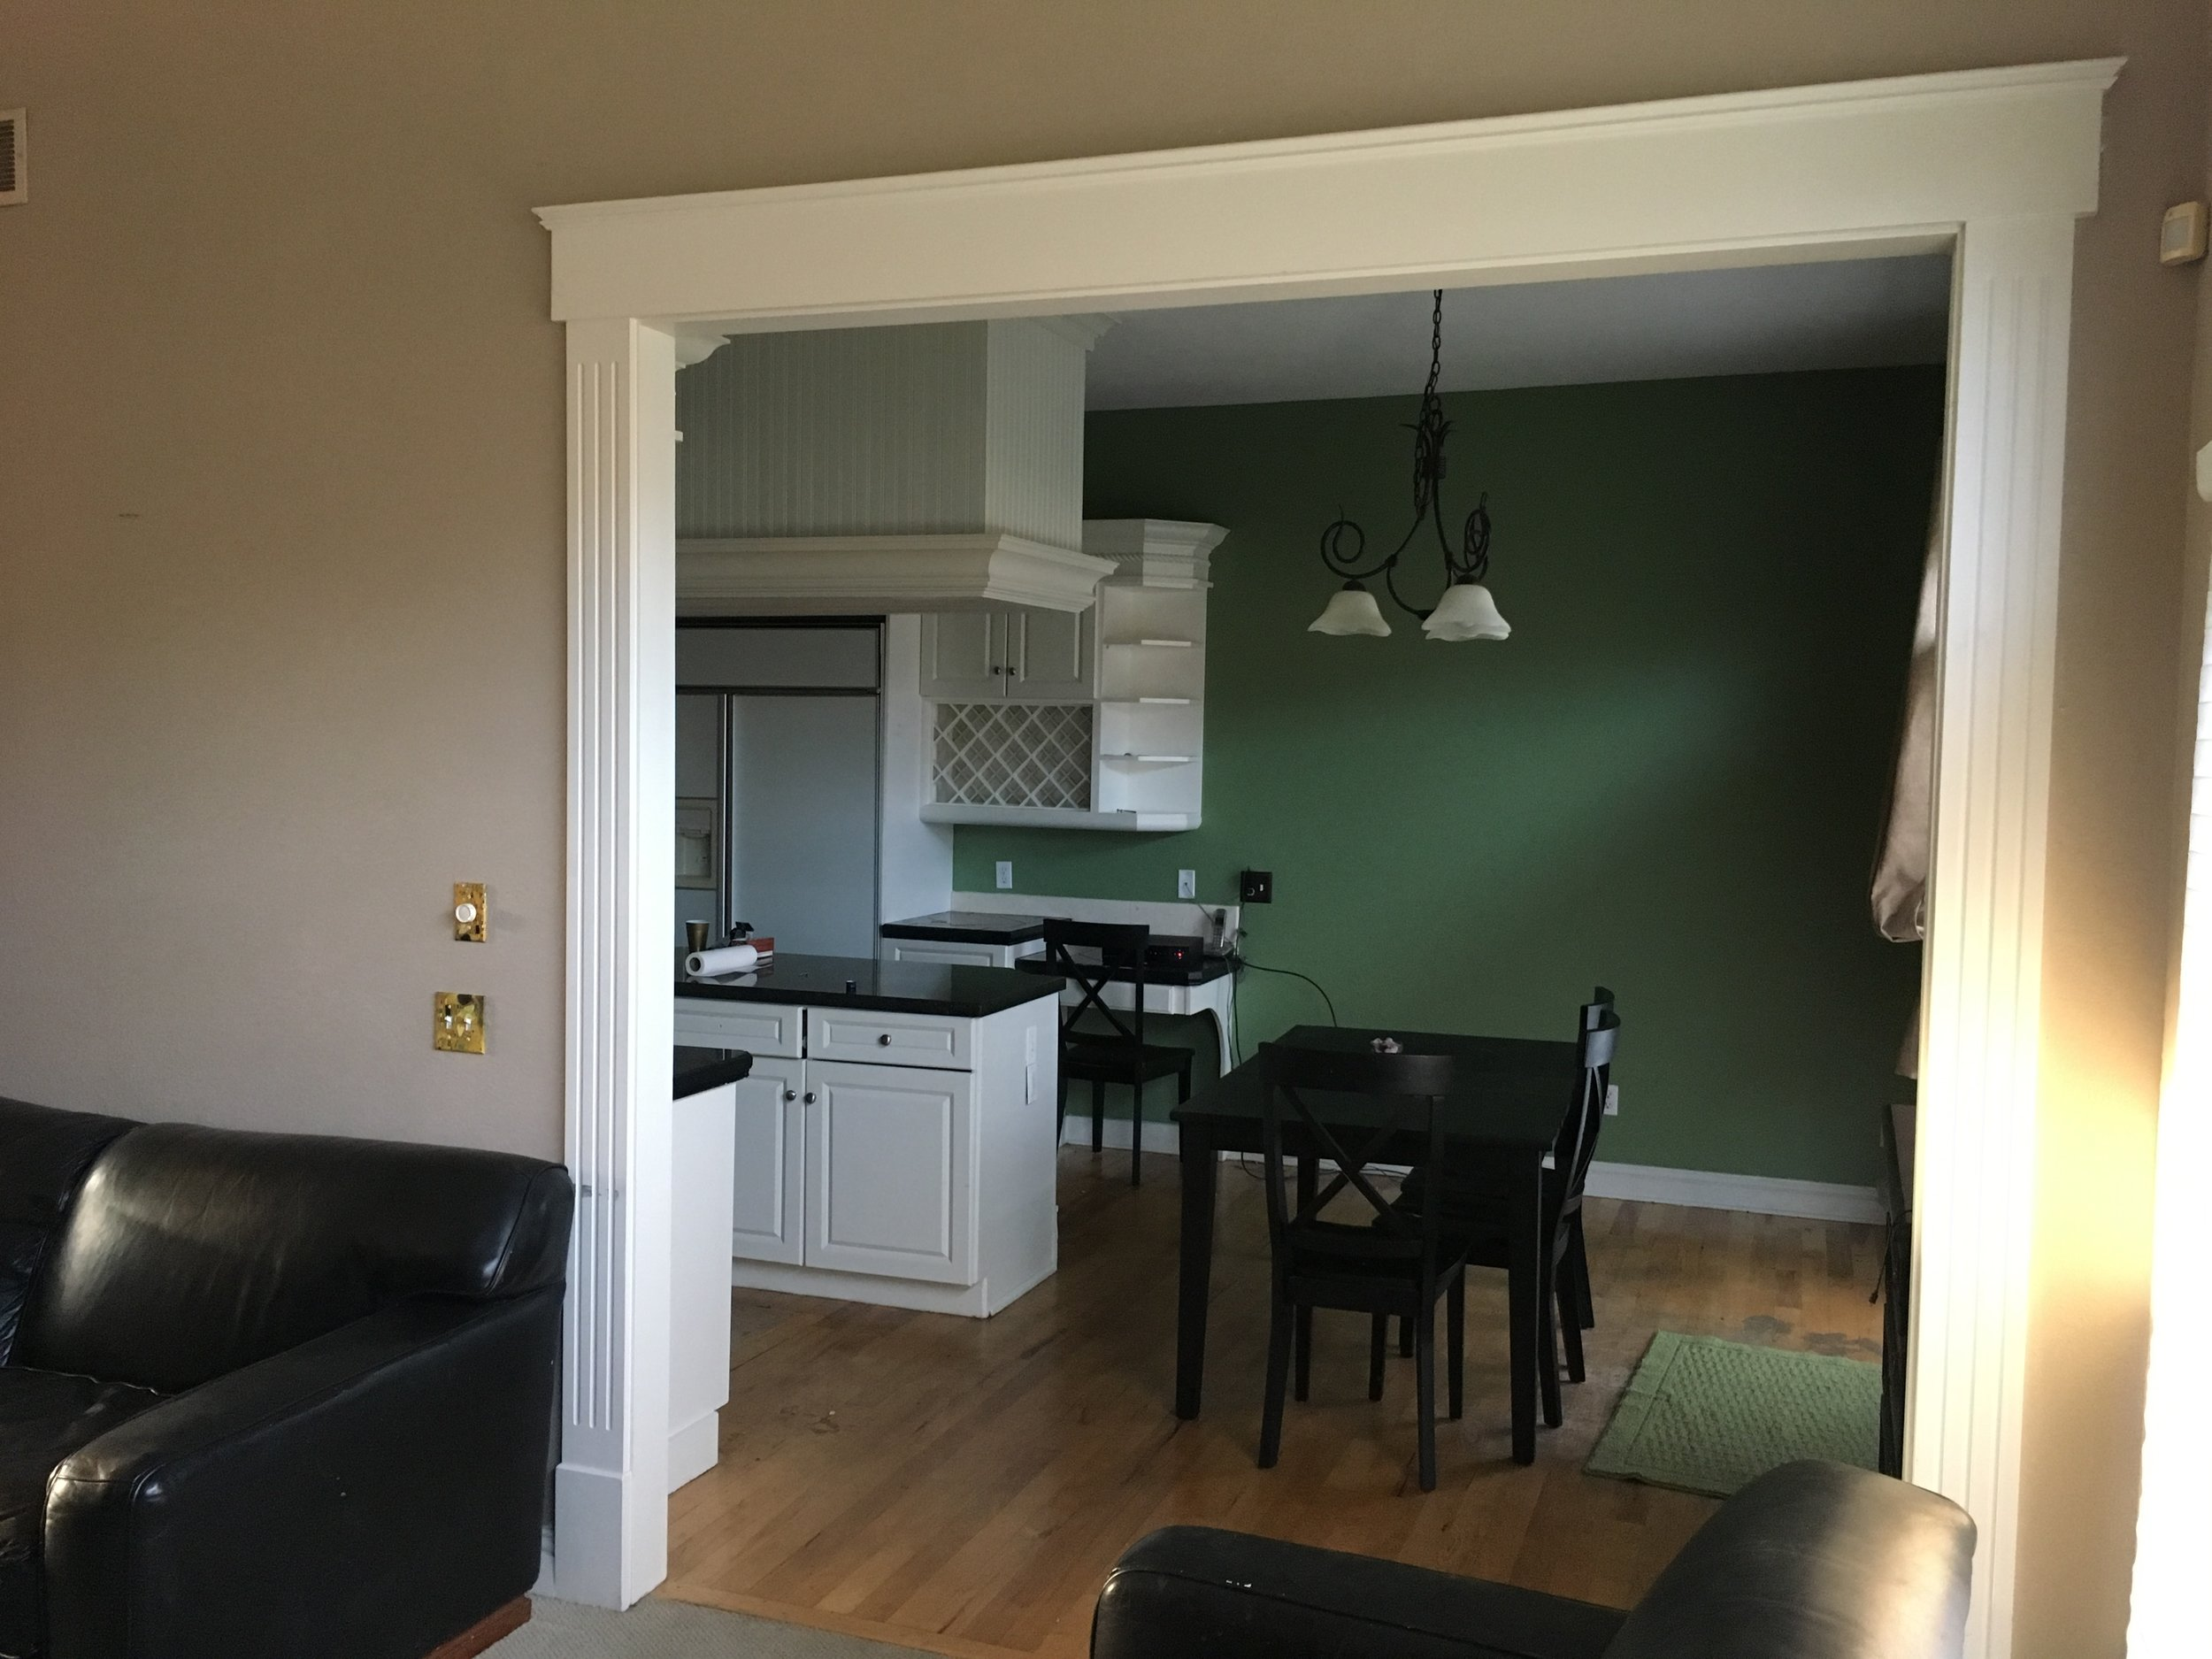 BEFORE-Overall lack of lighting and soffit above the island makes the kitchen appear much smaller than it is